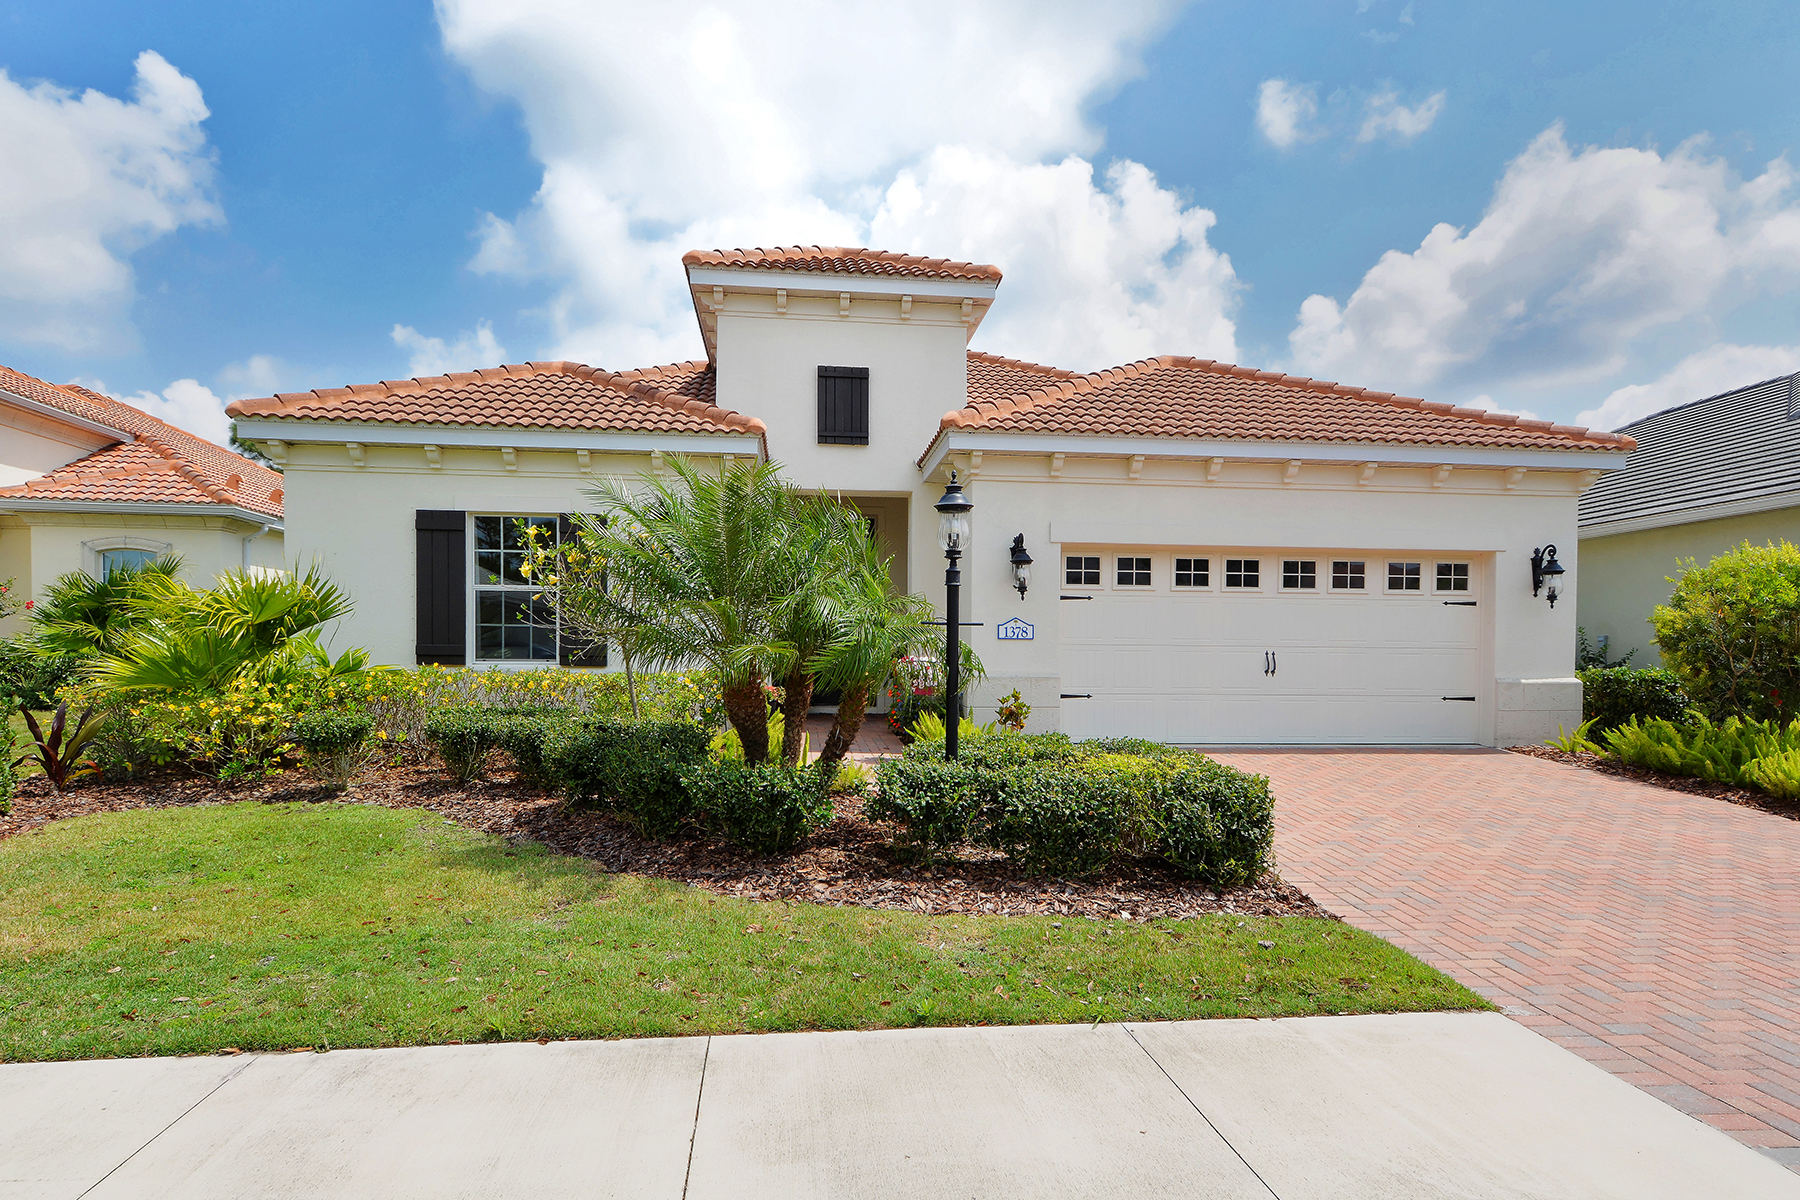 Single Family Home for Sale at GRAND PALM 1378 Still River Dr Venice, Florida, 34293 United States